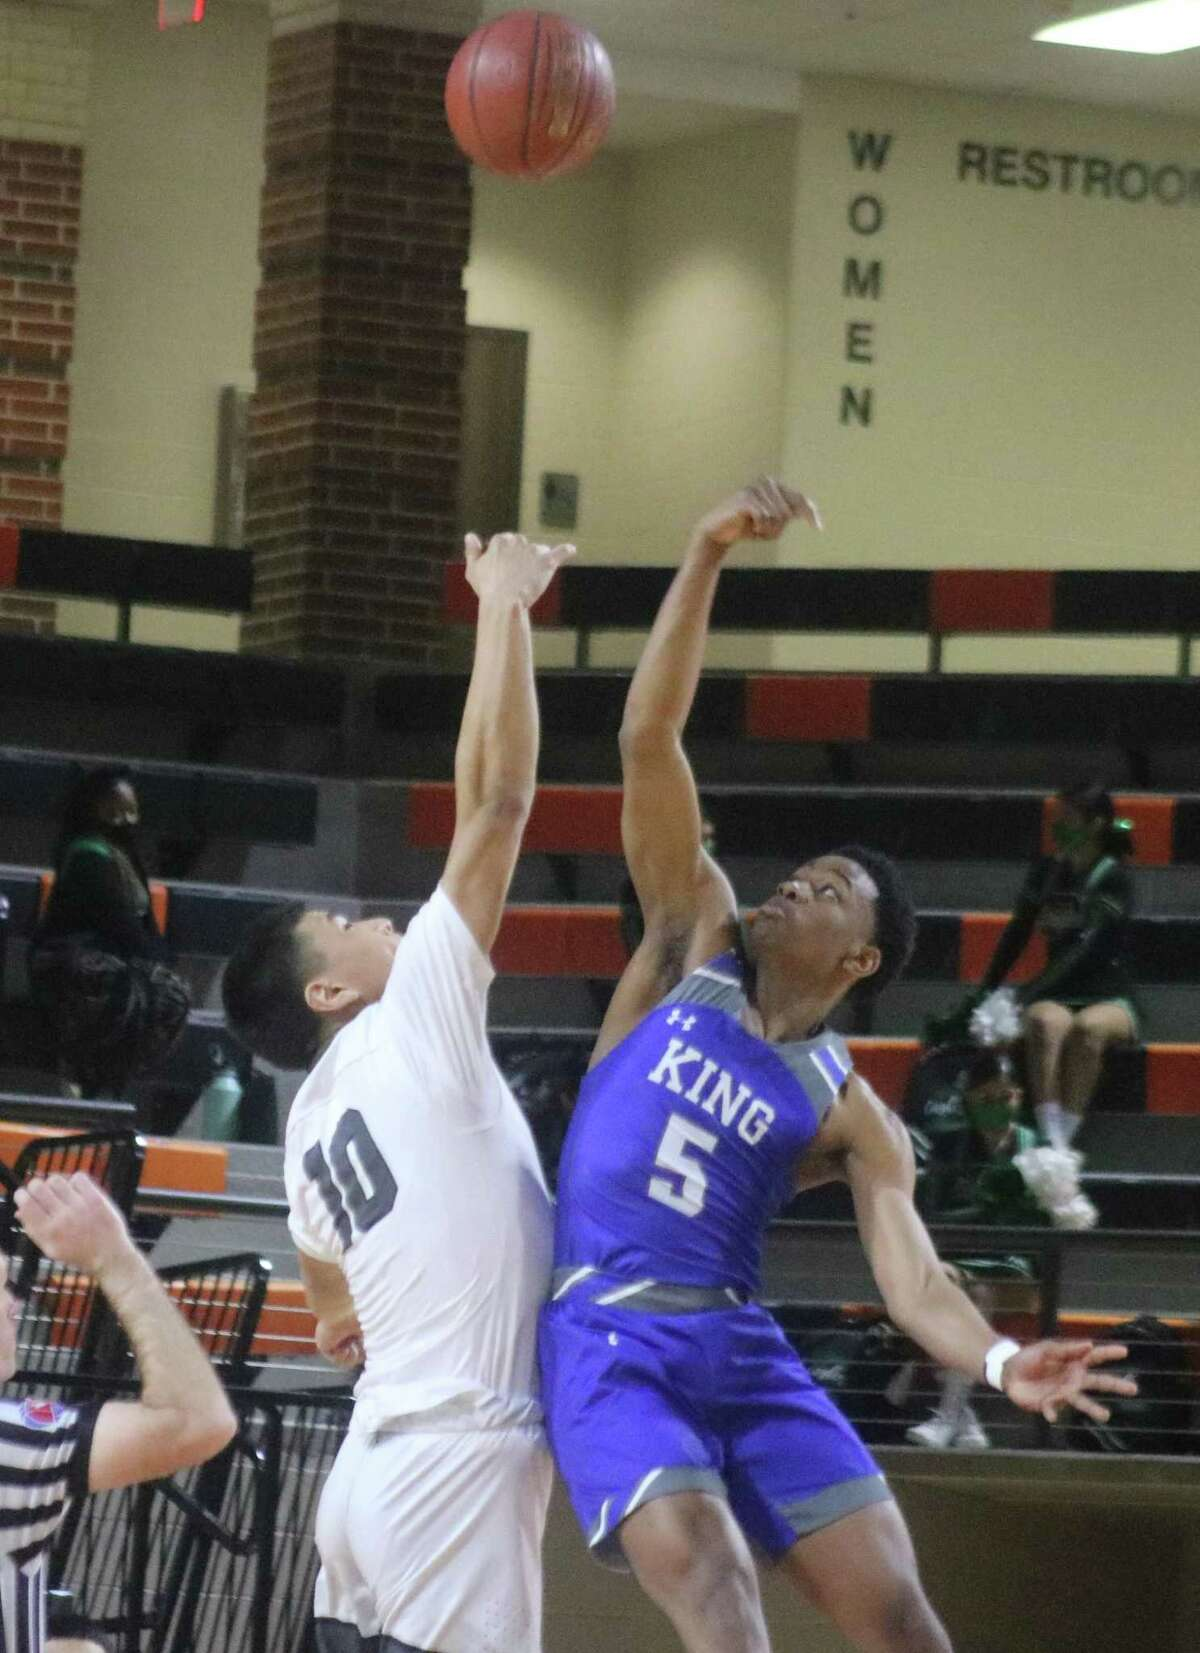 Pasadena Kevin Juarez and C.E. King's Davonte Curry contest the opening tipoff to the bi-district game Monday night. When Juarez goes for the opening tipoff tonight at 7, it will be Pasadena's first appearance in an Area title game since 1993.